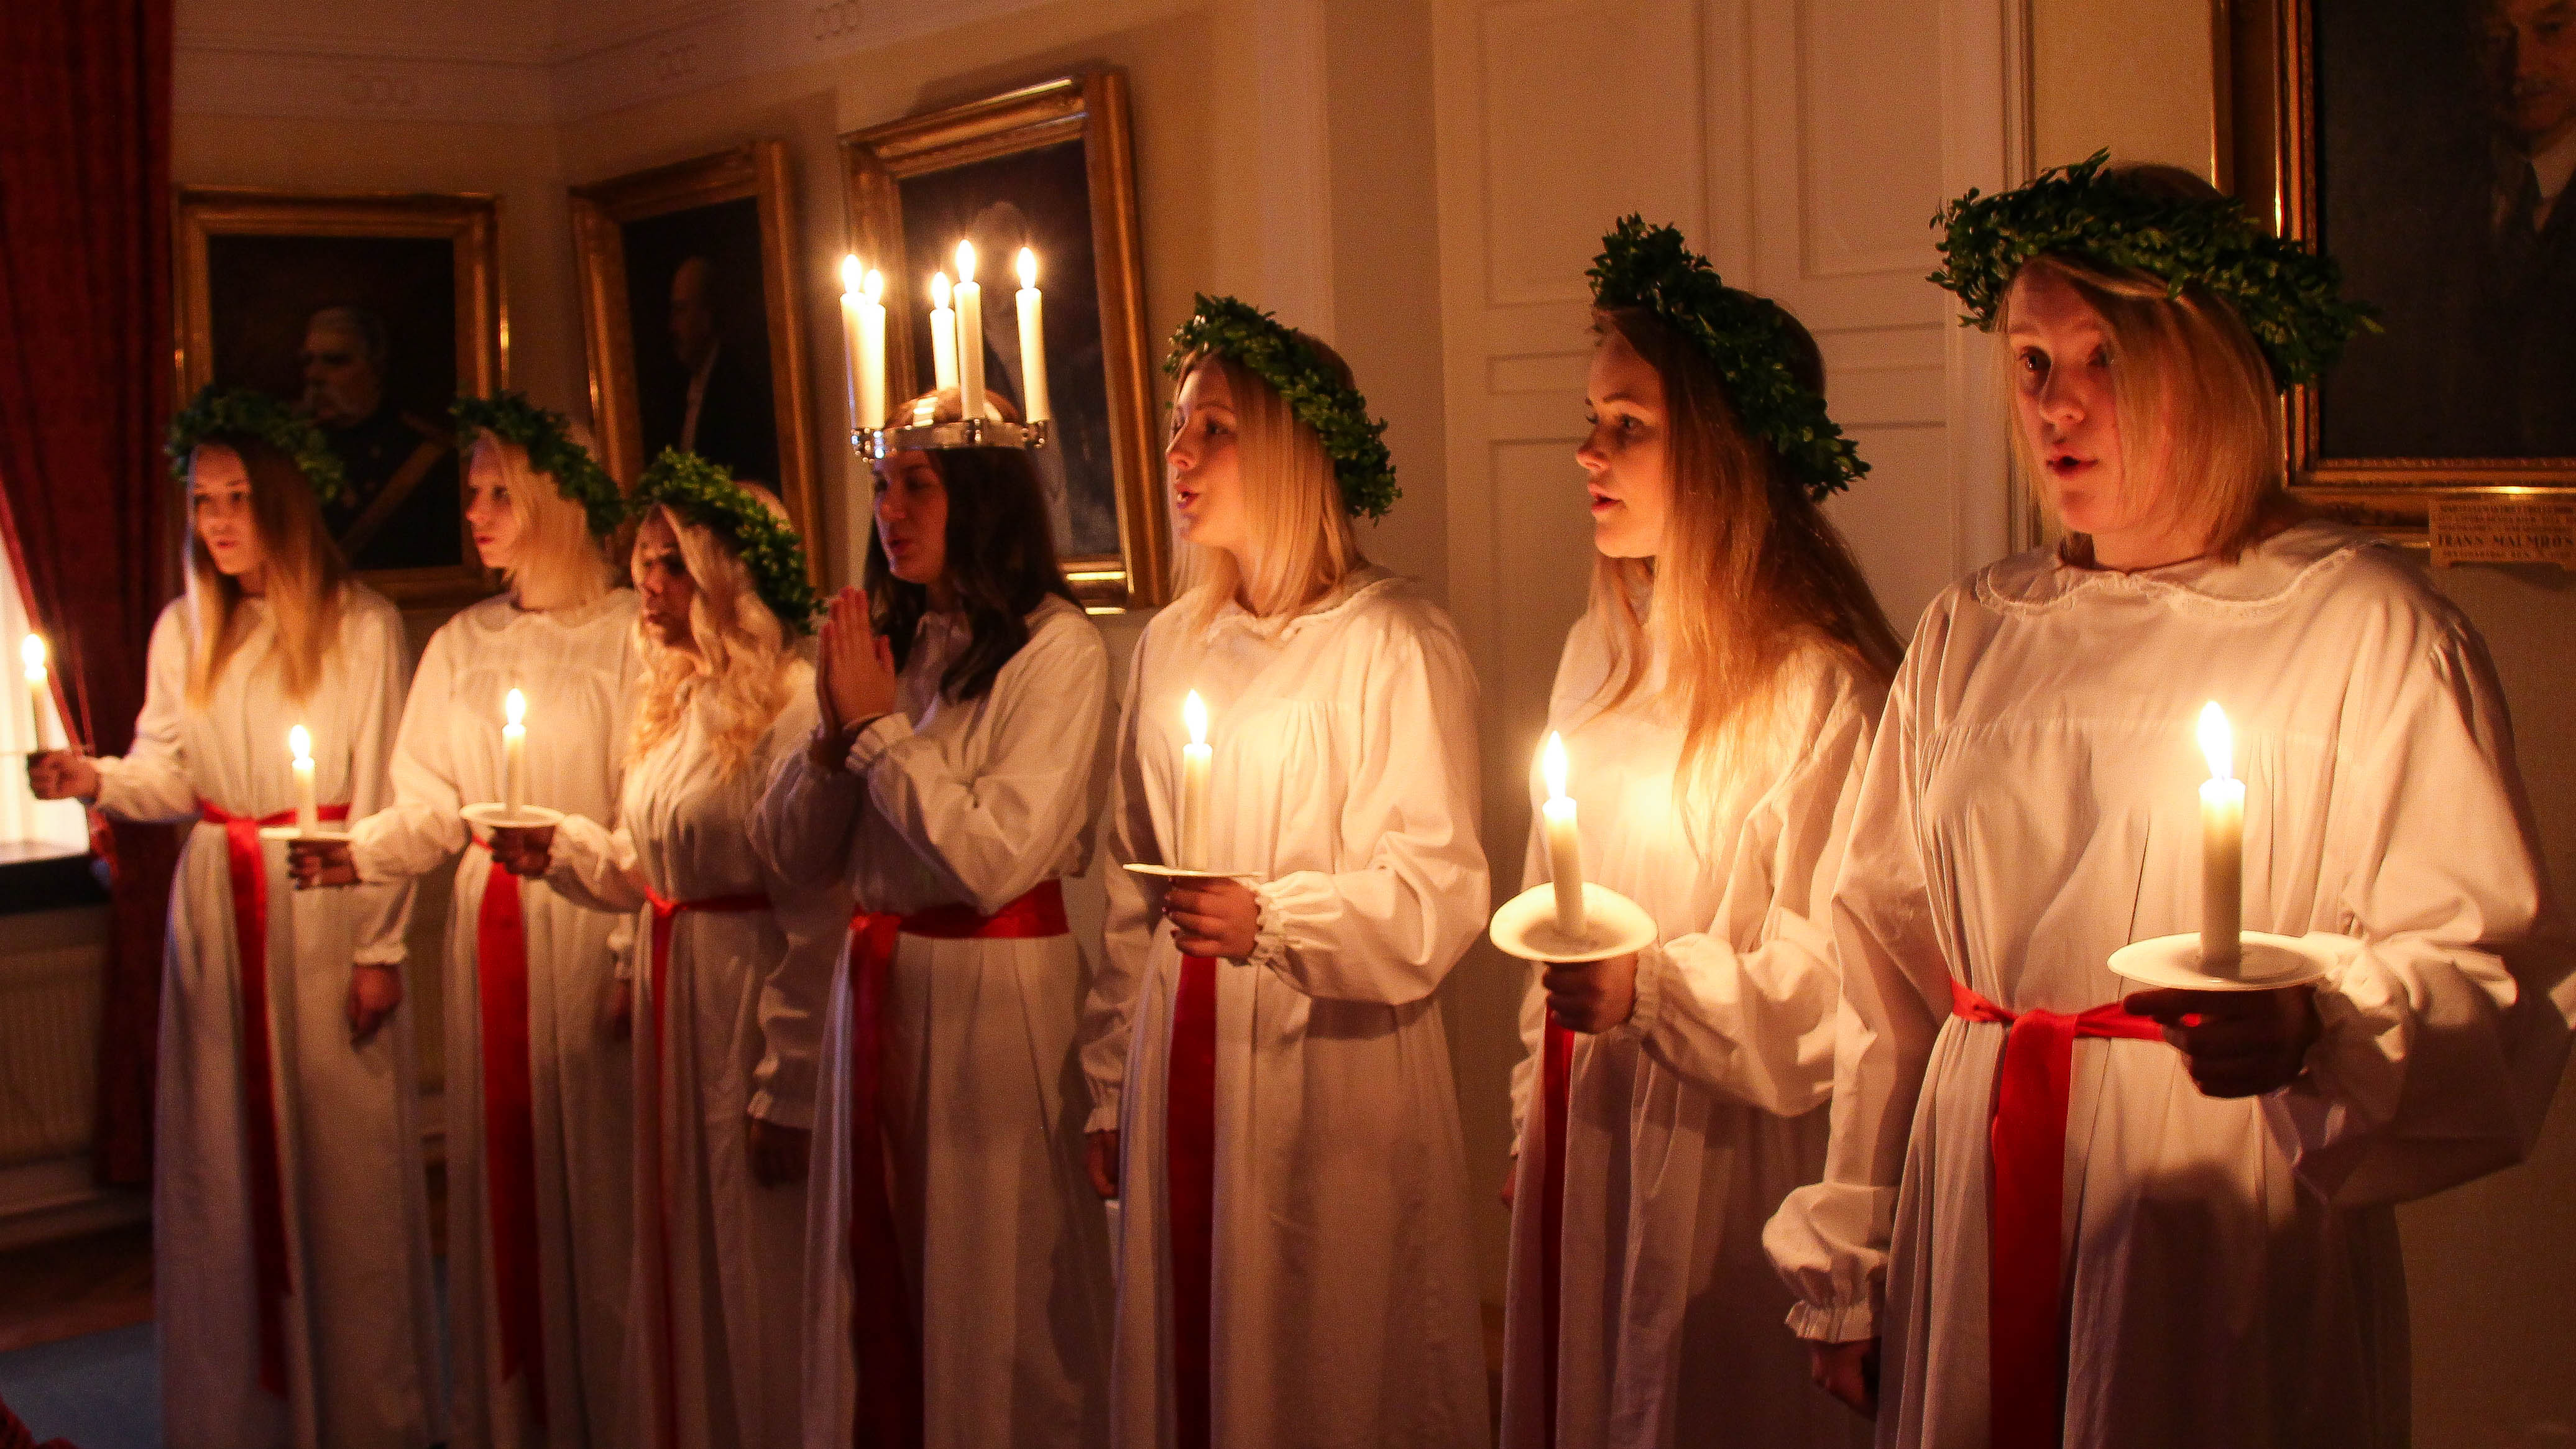 The Swedish Christmas Traditions You Didn't Know About